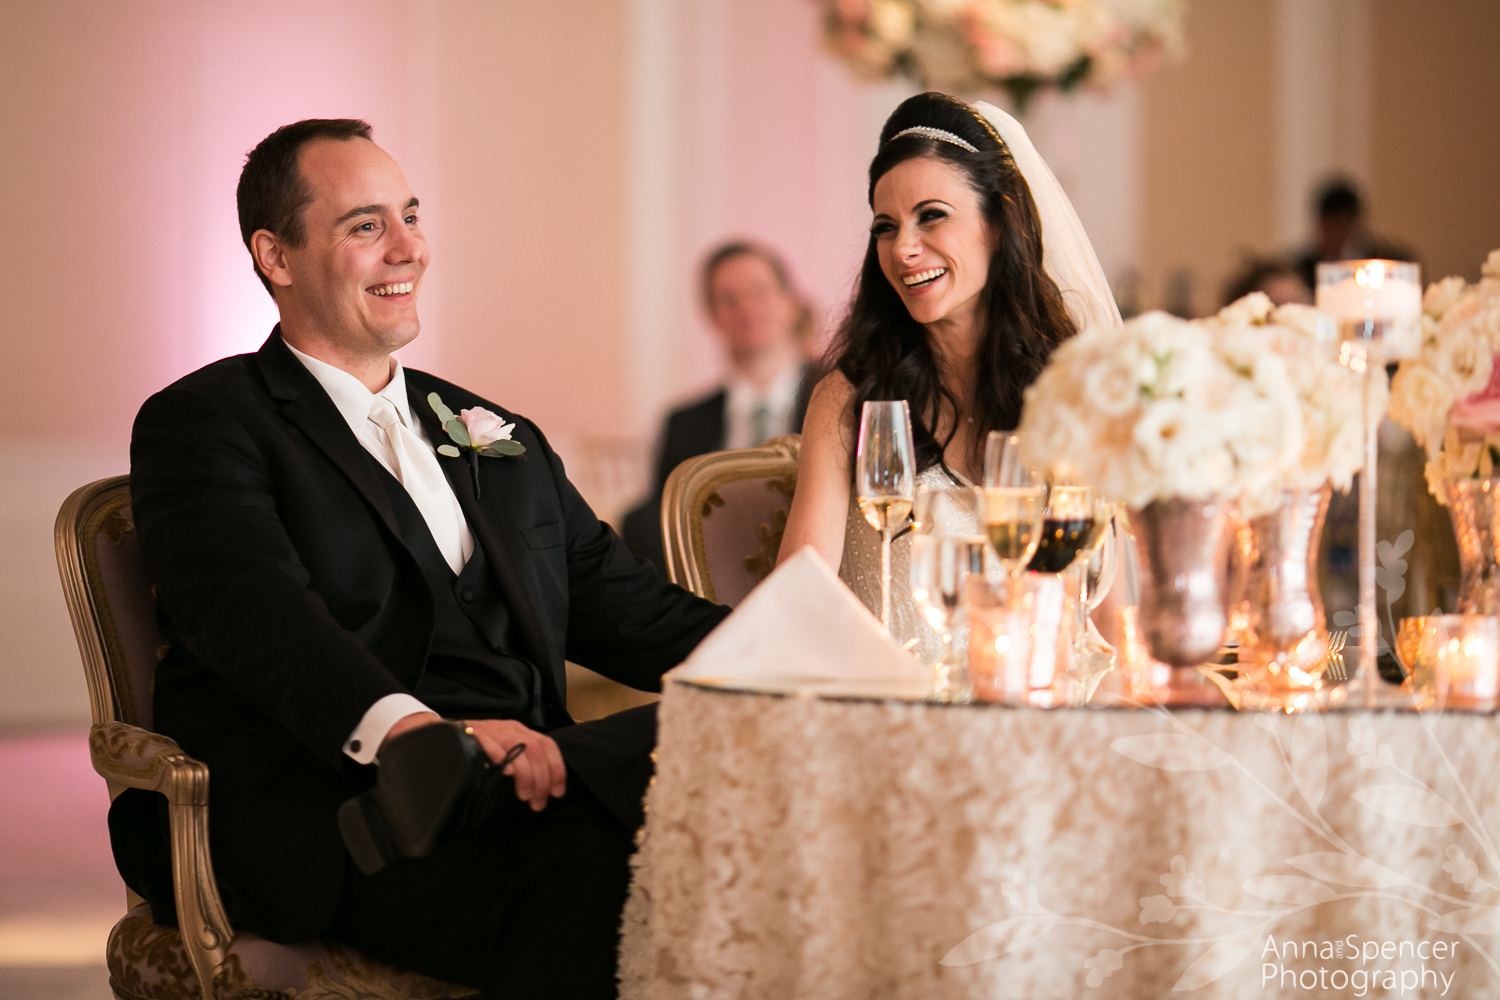 St Regis Astor Ballroom Wedding Reception